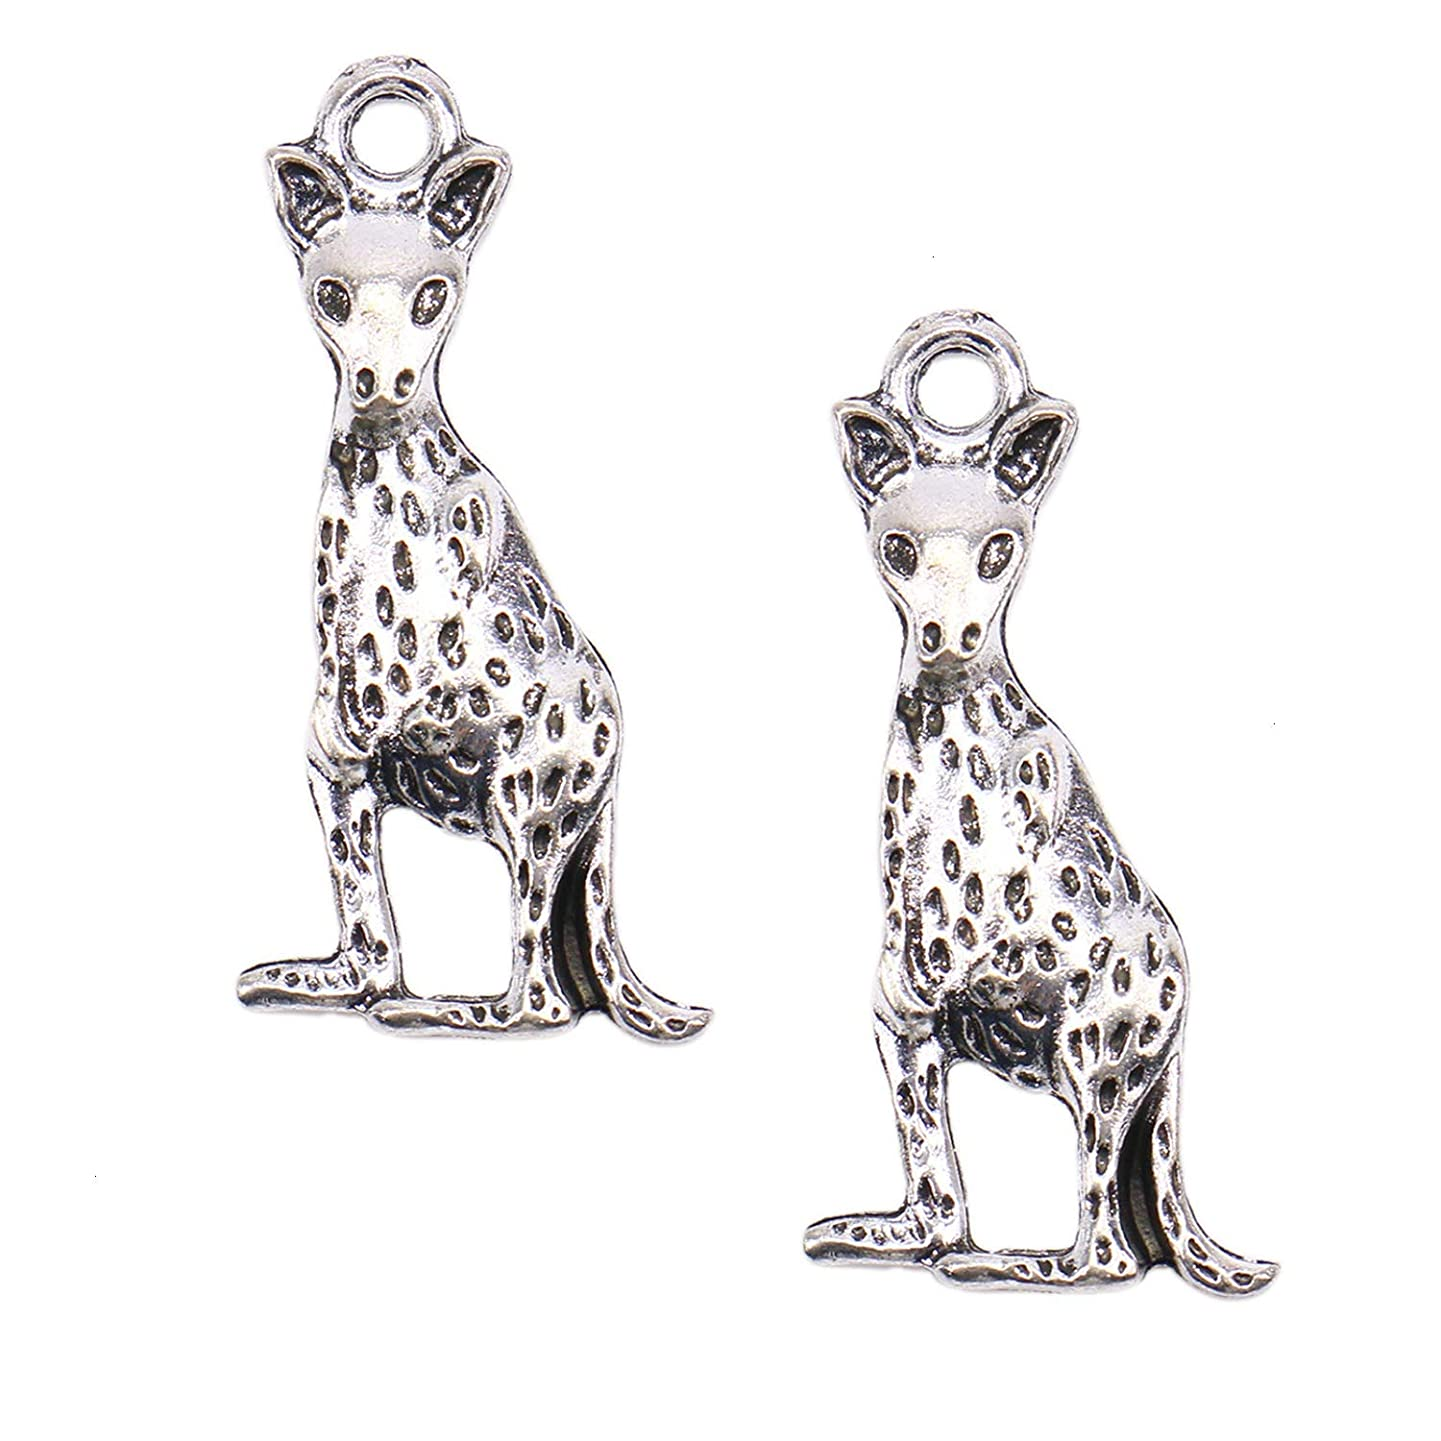 Monrocco 50pcs Kangaroo Charms Pendant Bead for Jewelry Making Bracelet DIY Crafting (Antique Silver)